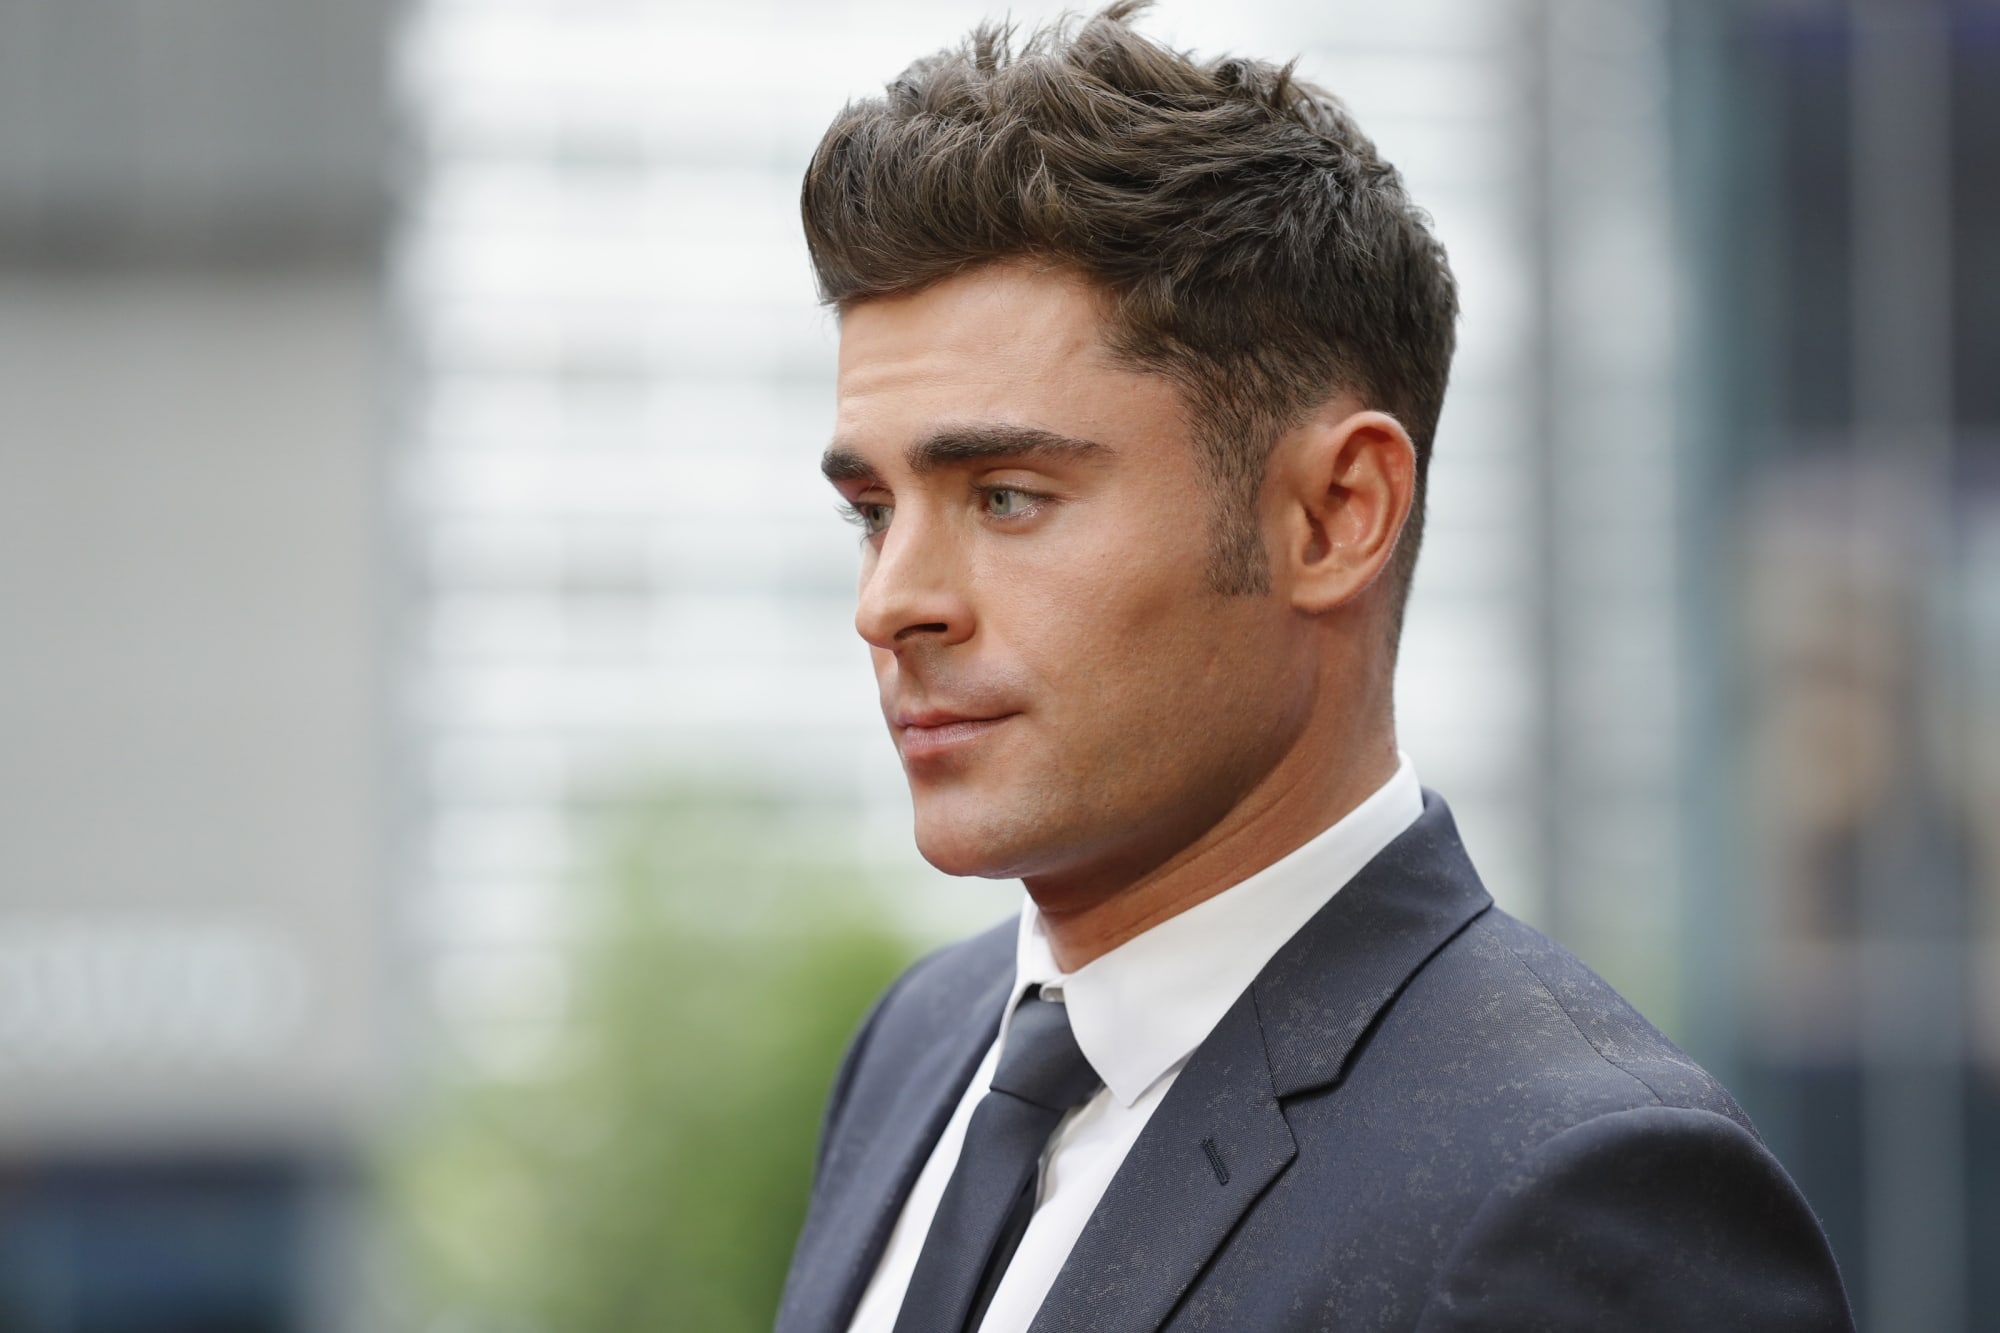 Guardians of the Galaxy: Zac Efron suits up as Adam Warlock in stunning image